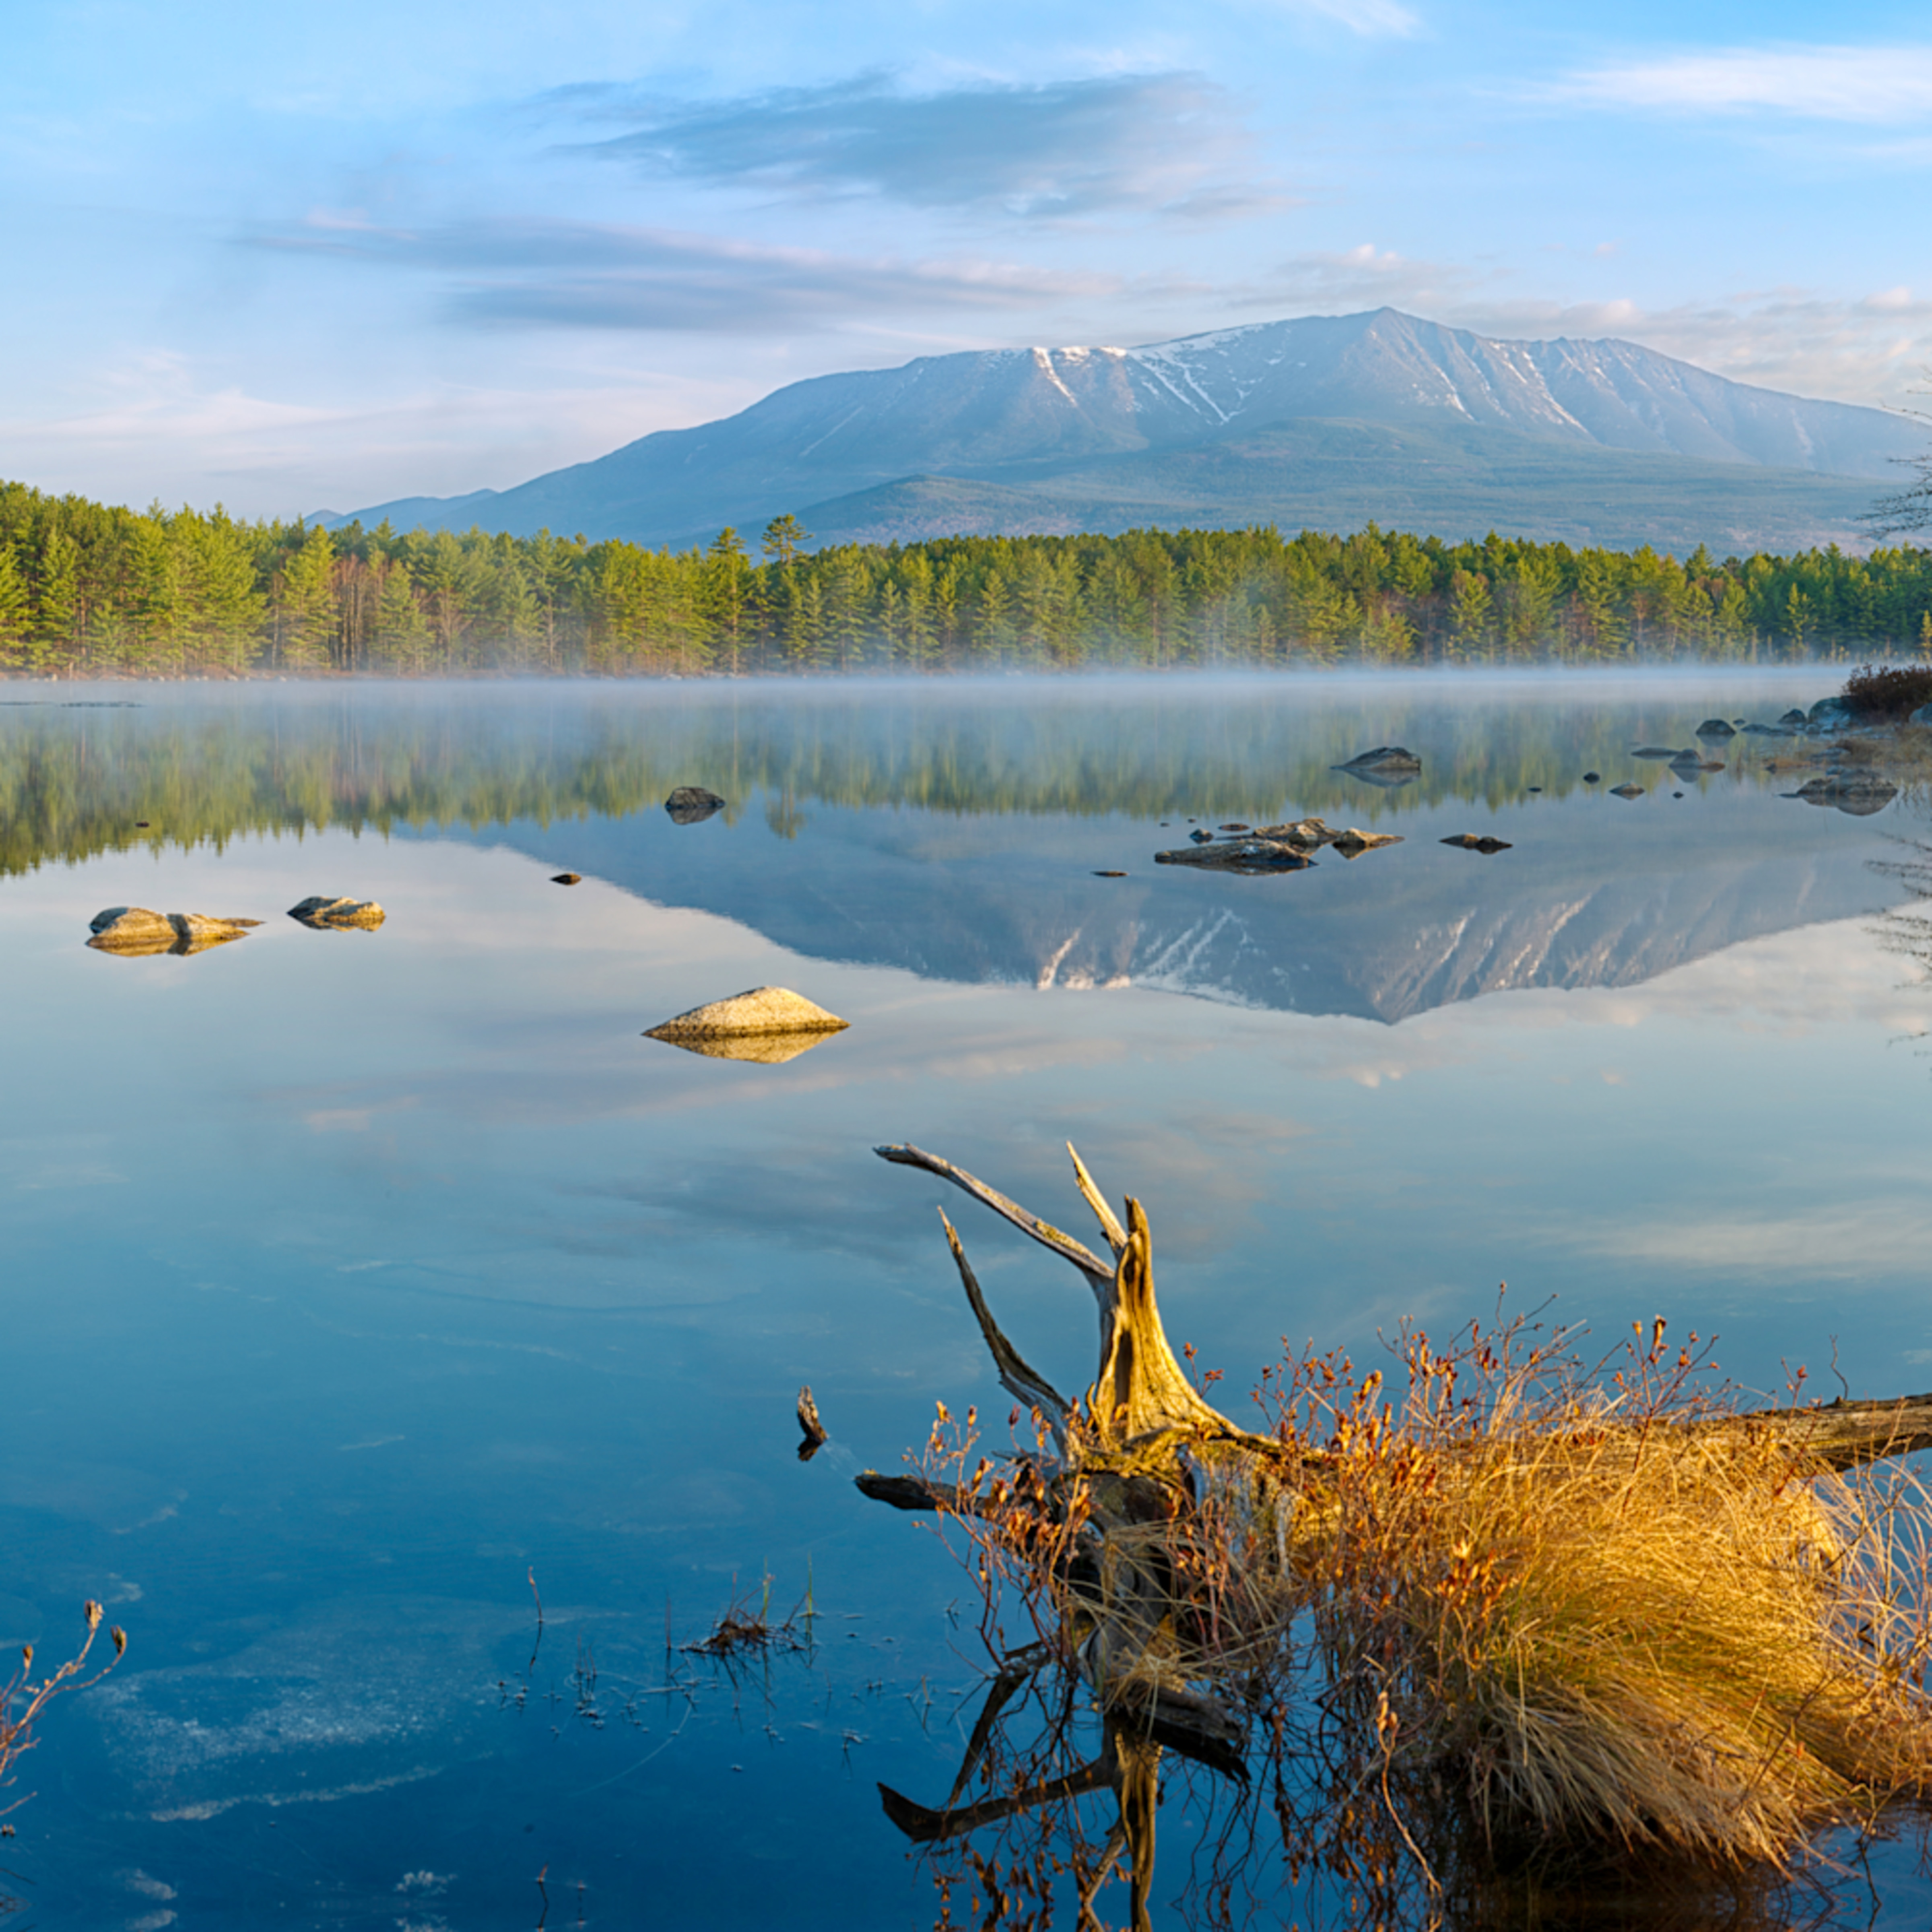 Katahdin from pockwockamus pond z51byp